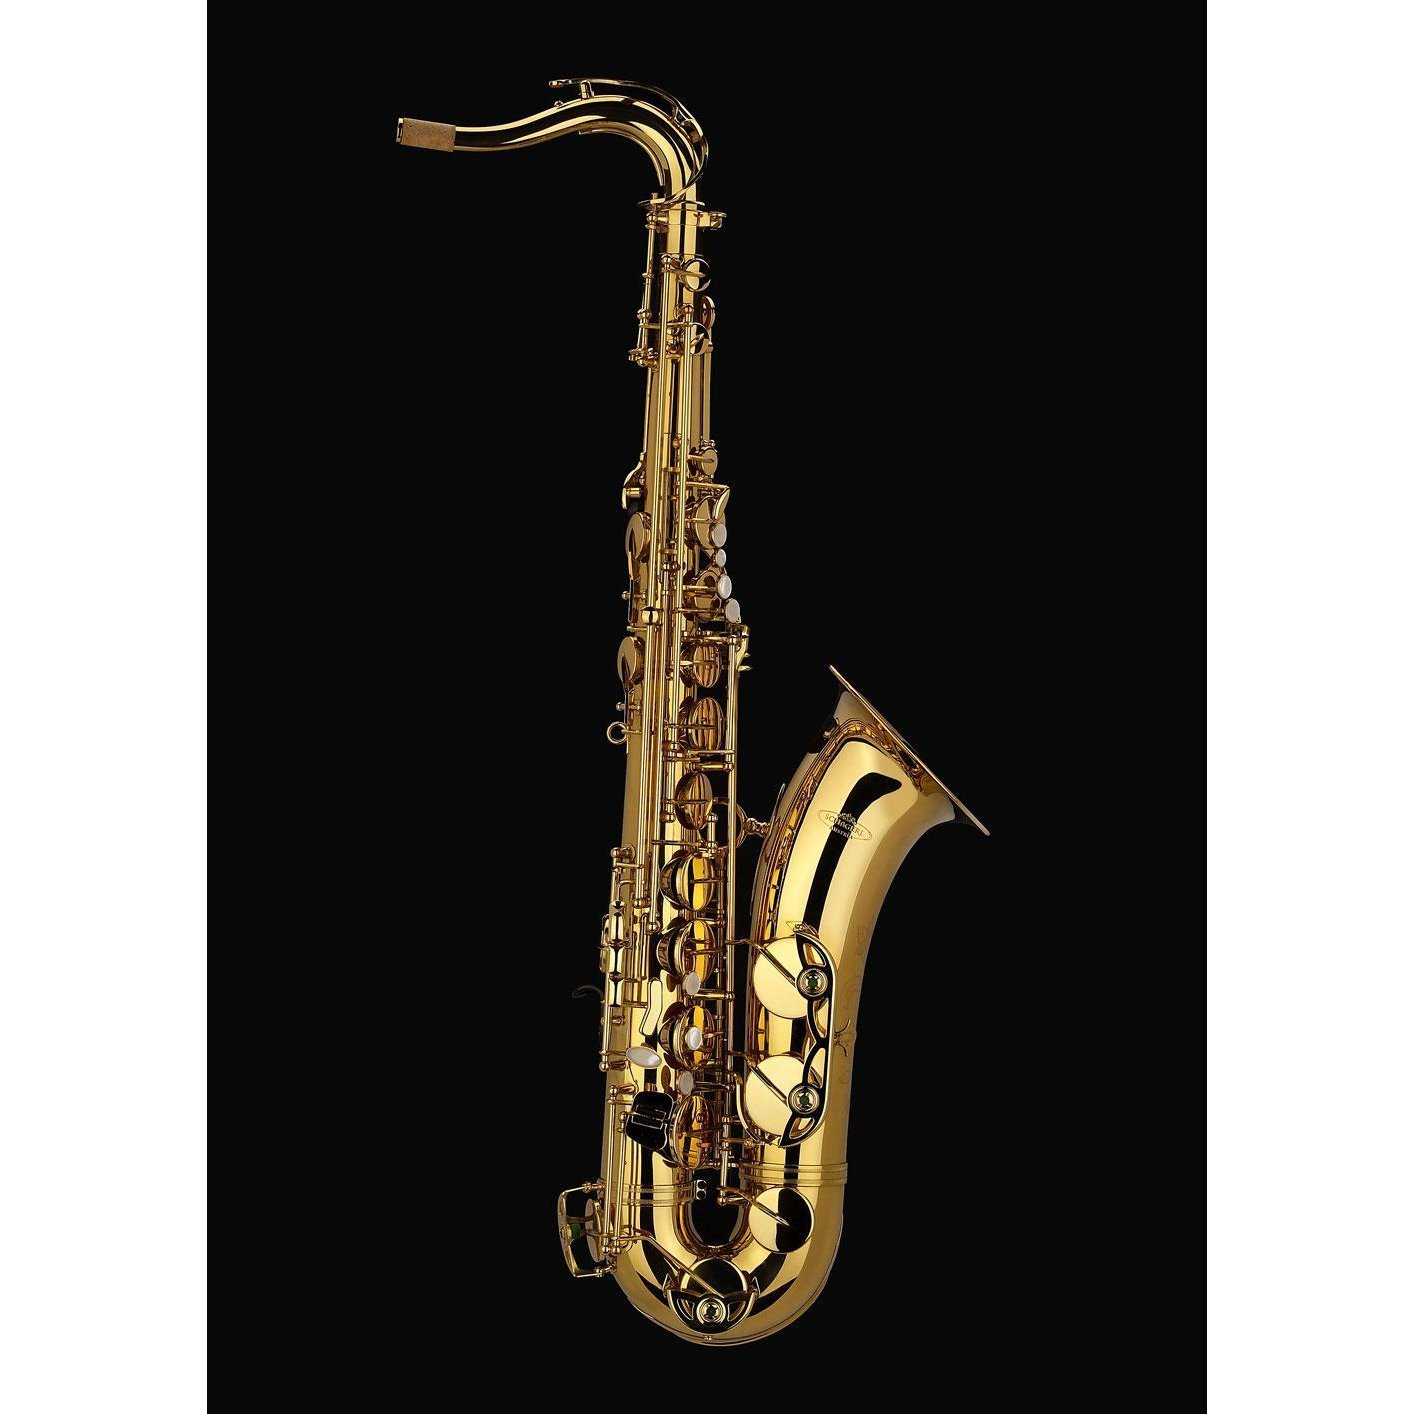 Schagerl - Academica Series - T-900 Tenor Saxophones-Saxophone-Schagerl-Lacquered-Music Elements